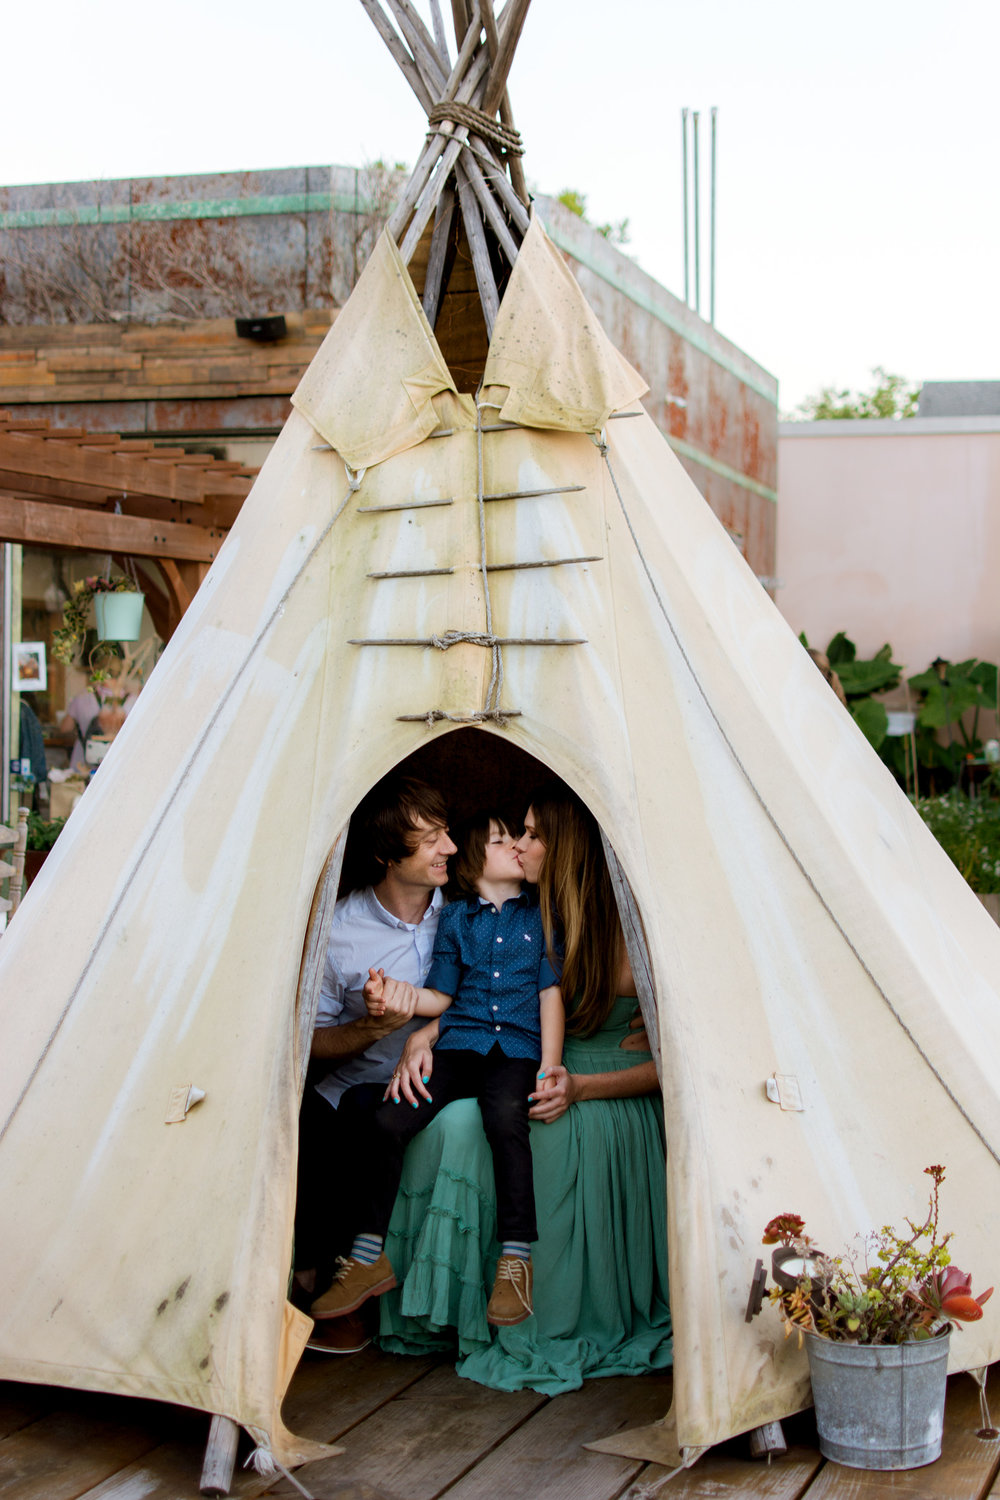 Mother kisses her son in a teepee during her maternity session with Carlie Chew Photography at the Poor Porker, Lakeland FL